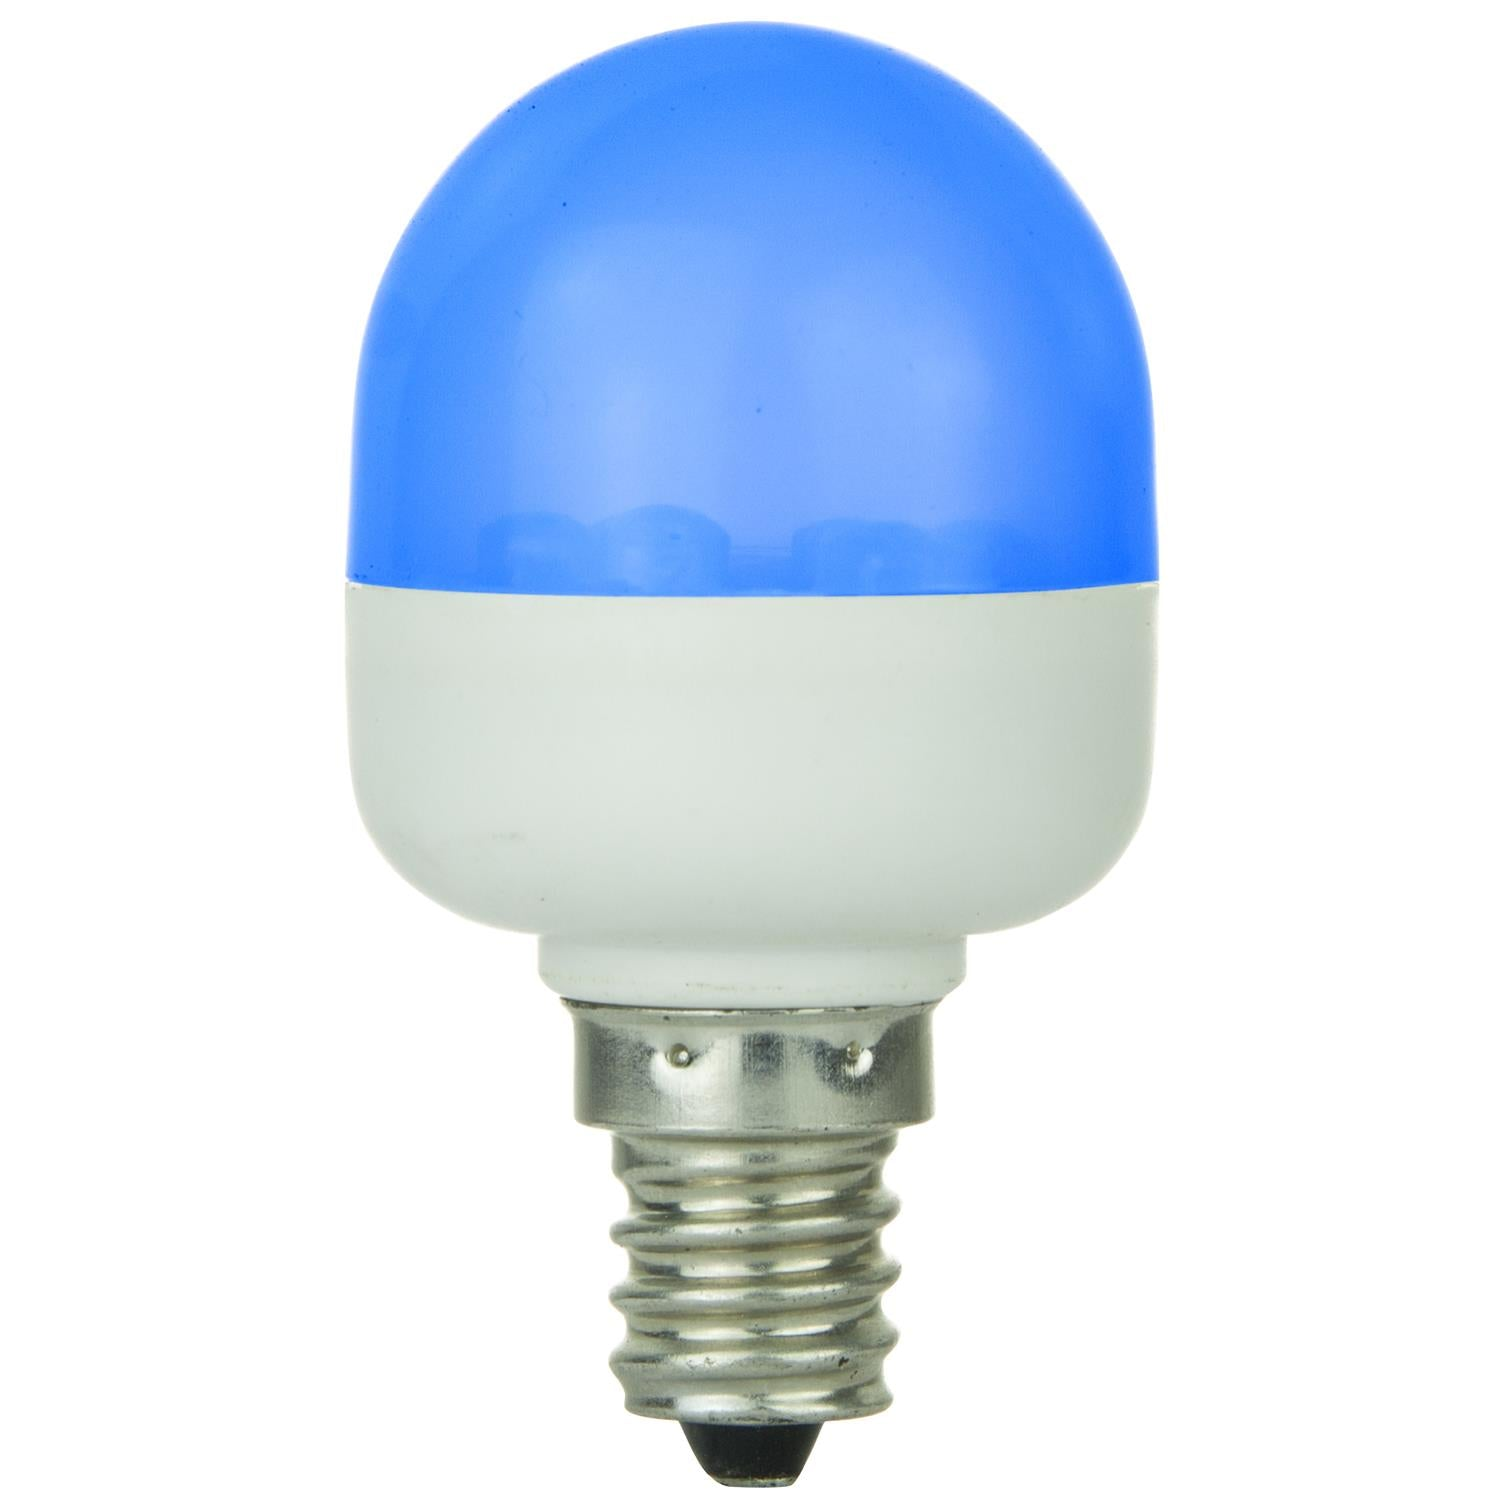 SUNLITE 80256-SU T10 Tubular Indicator Candelabra Base Light Bulb Blue